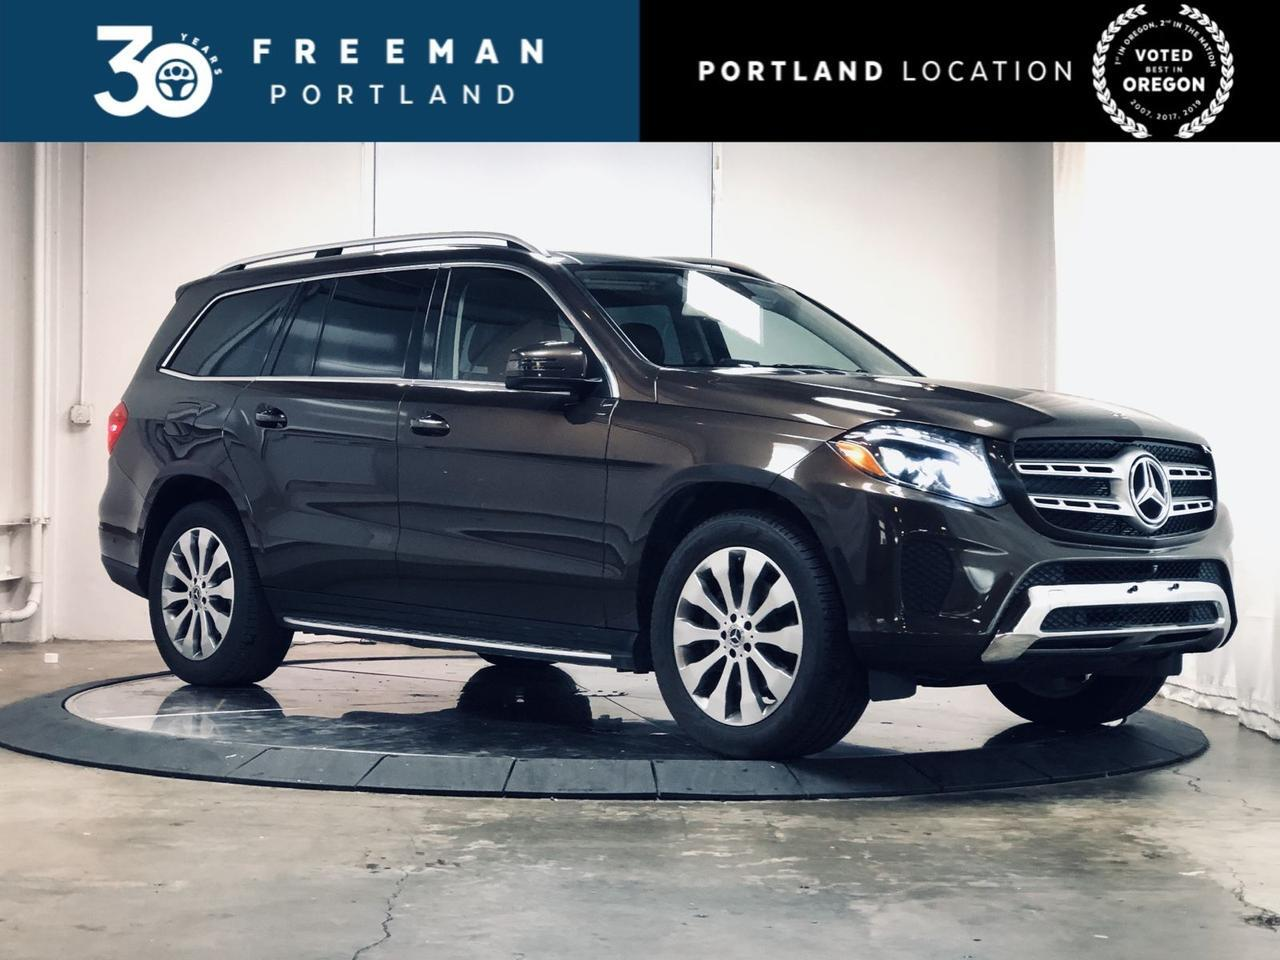 2017 Mercedes-Benz GLS 450 Designo Pkg Pano Roof $20k In Options!! Portland OR